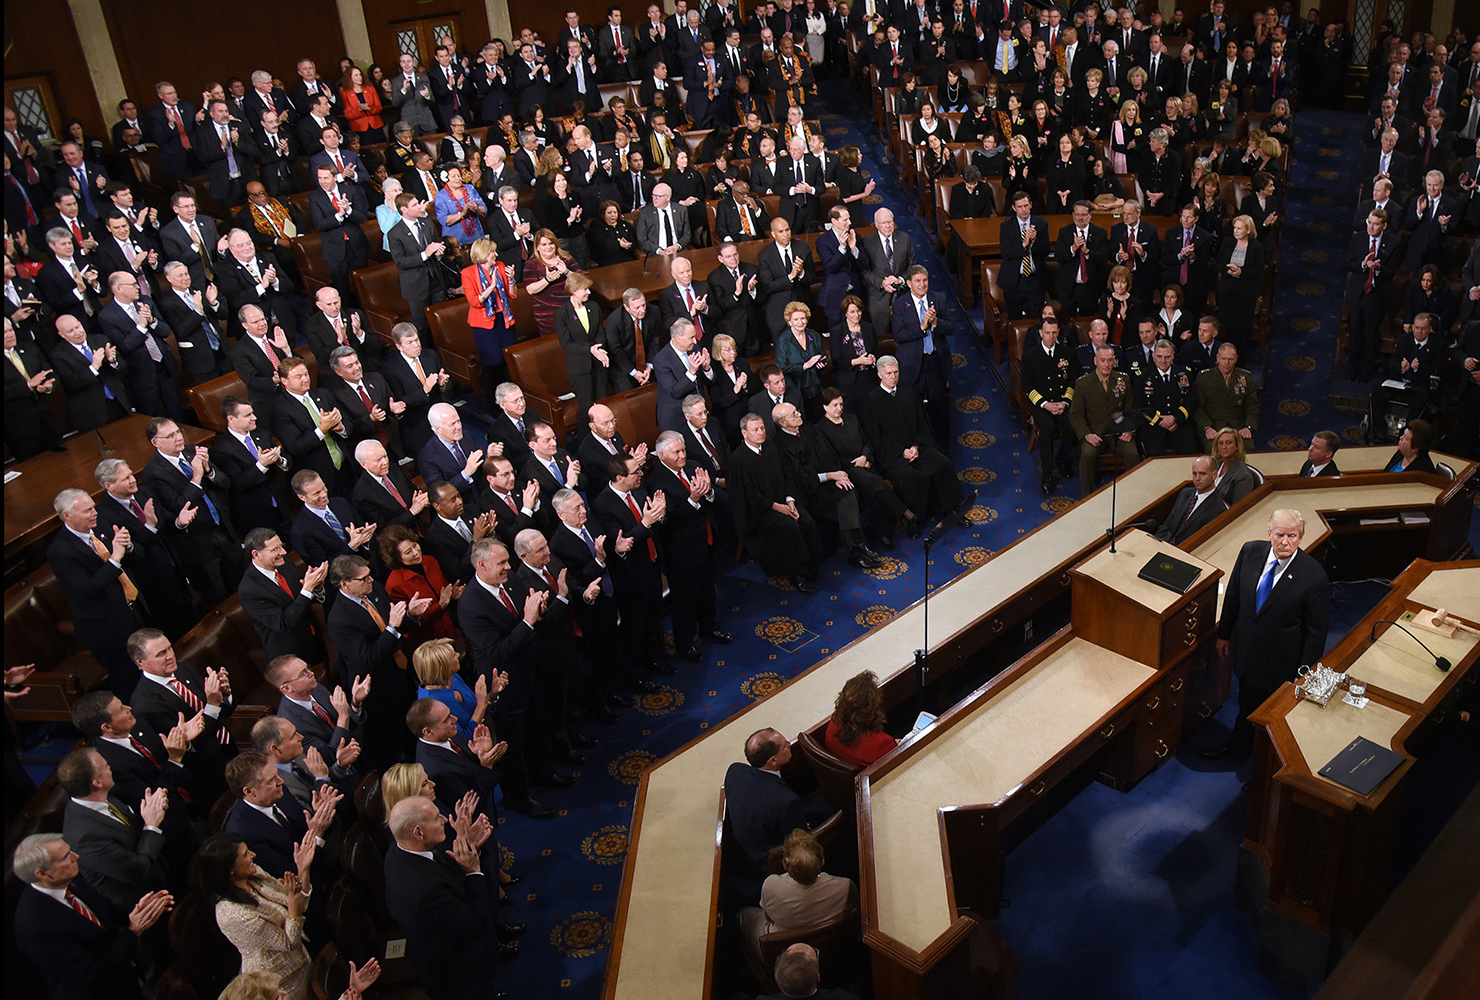 President Donald Trump delivers his first State of the Union address before a joint session of Congress on Capitol Hill in Washington, D.C., on January 30, 2018. (Olivier Douliery/Abaca Press/TNS